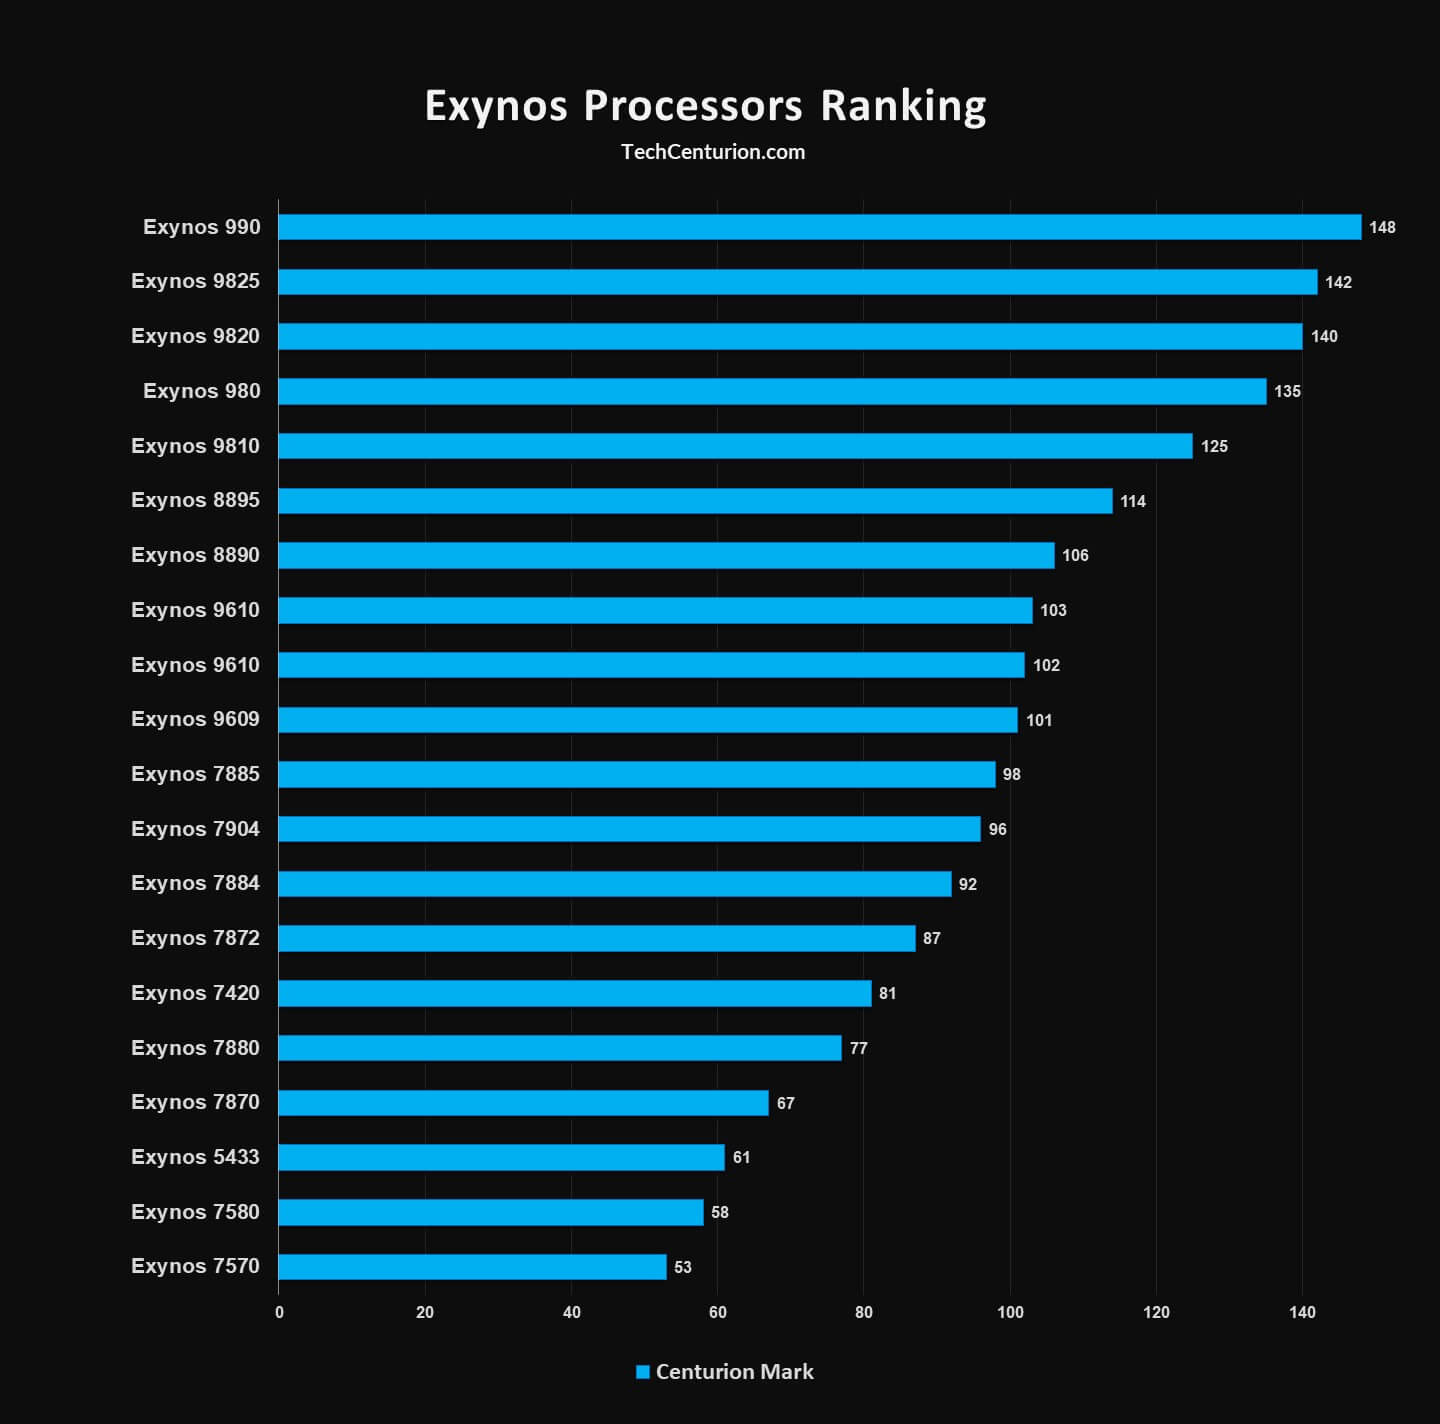 Exynos Processors Ranking